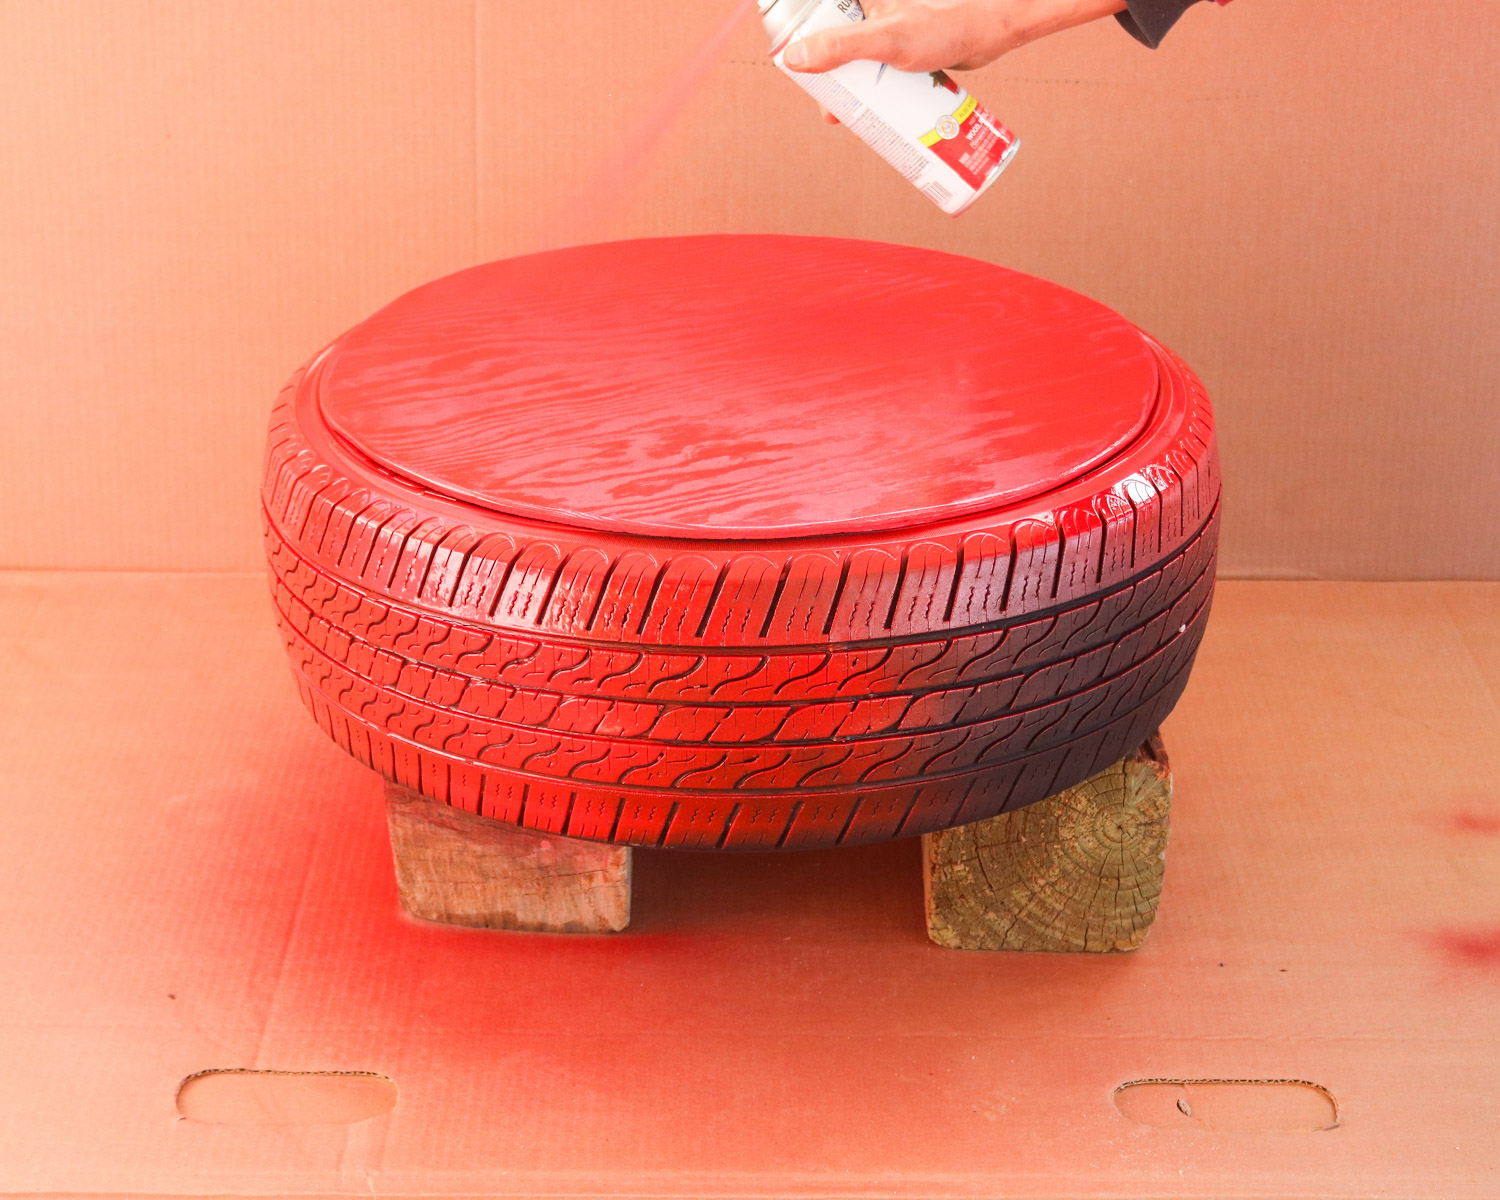 spray painting the tire red for a christmas ornament